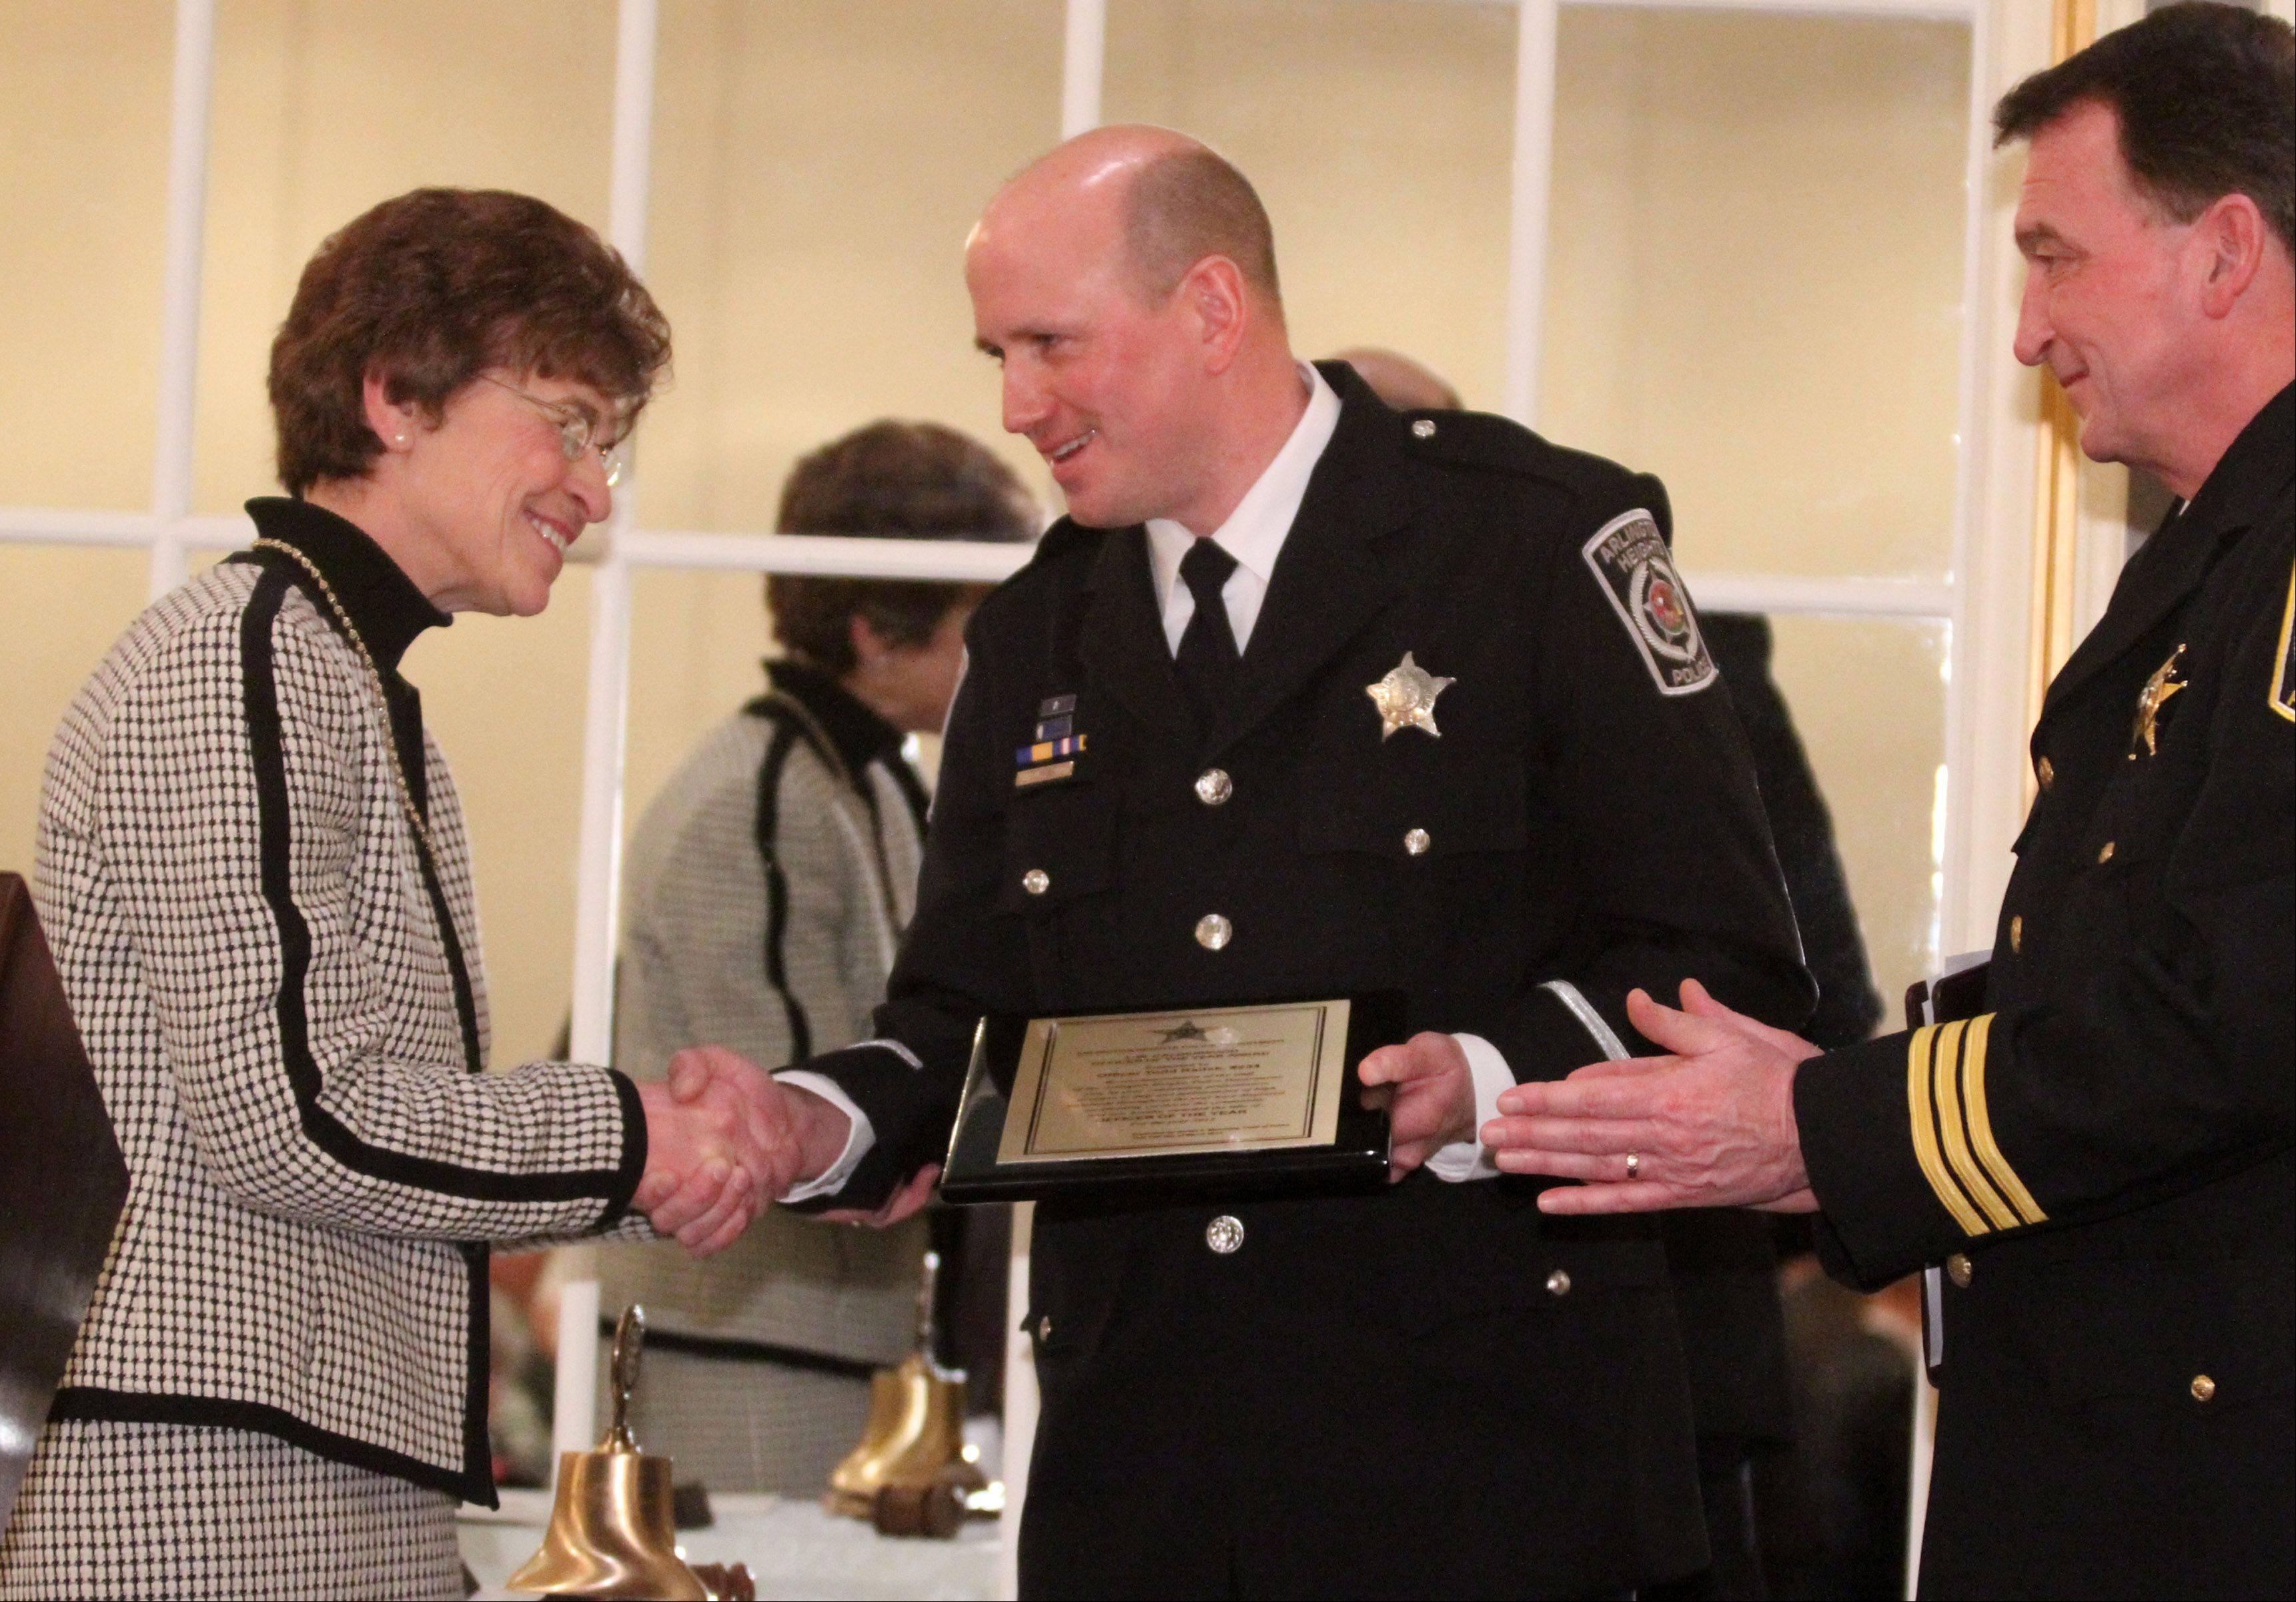 Investigator Todd Radek, center, is congratulated by Arlington Heights Mayor Arlene J. Mulder, after receiving the 2012 Officer of the Year award from the Arlington Heights Rotary Club and Arlington Heights Police Chief Gerald Mourning, right.